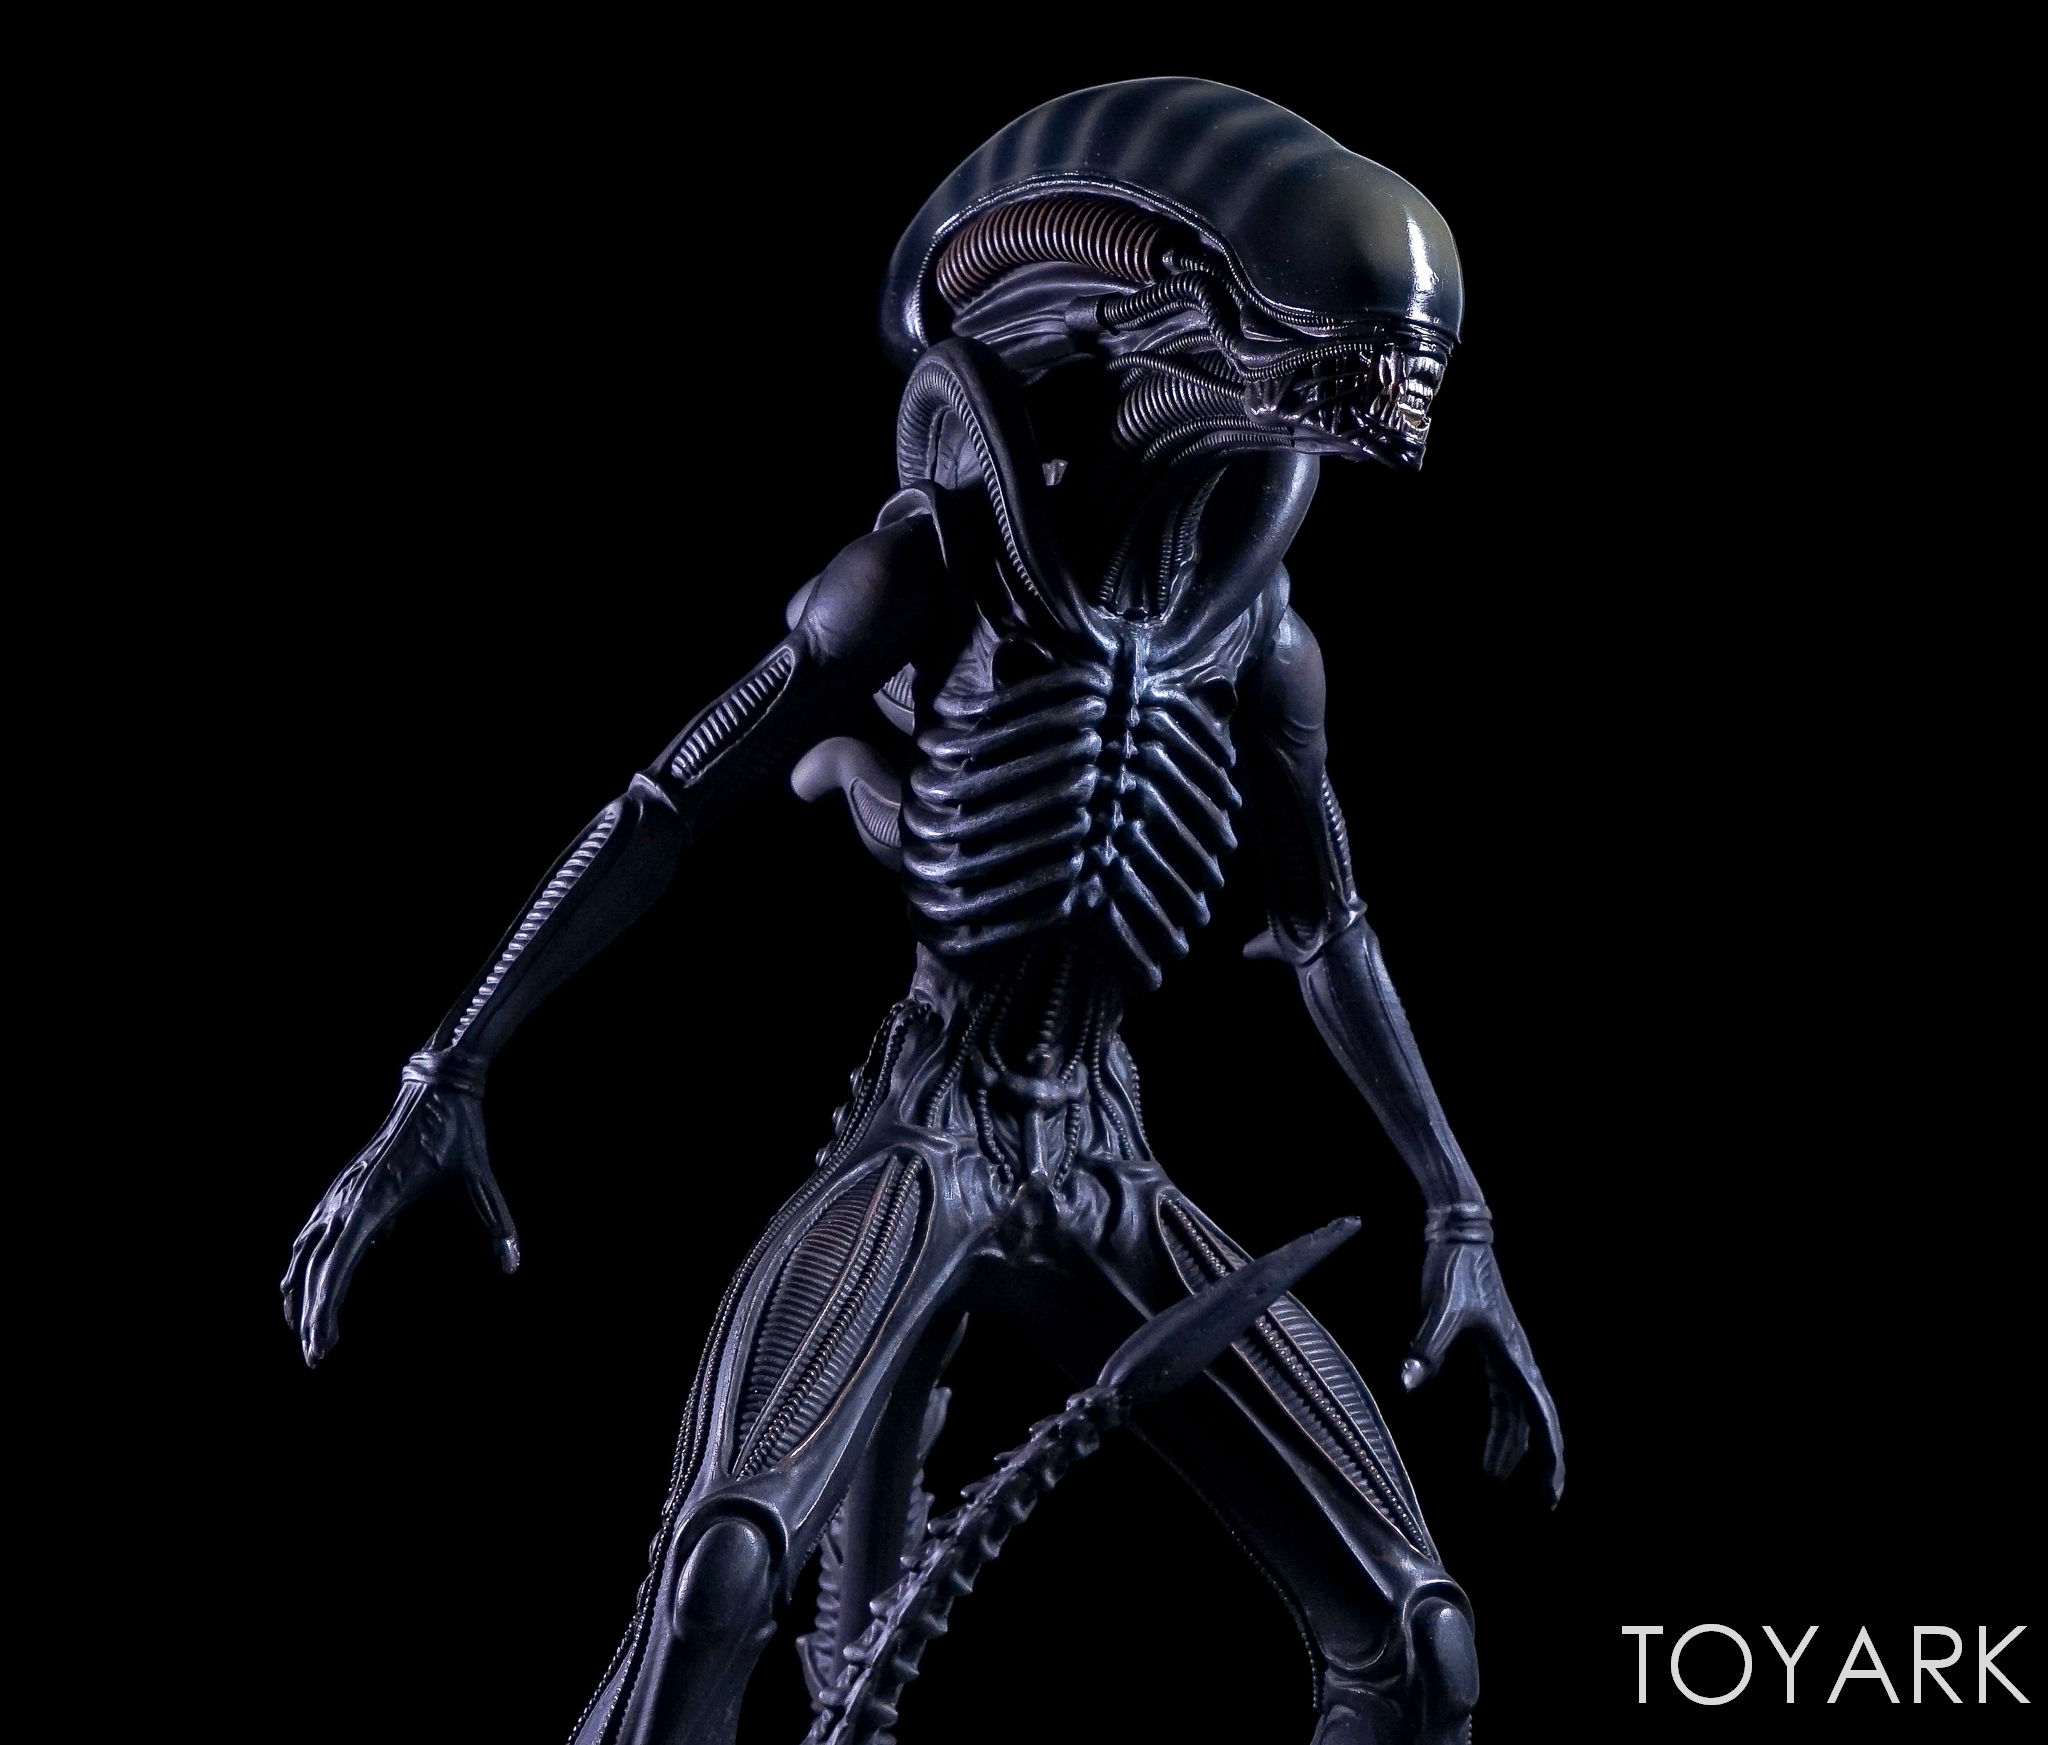 http://news.toyark.com/wp-content/uploads/sites/4/2017/05/Hero-Collector-Mega-Alien-Statue-019.jpg